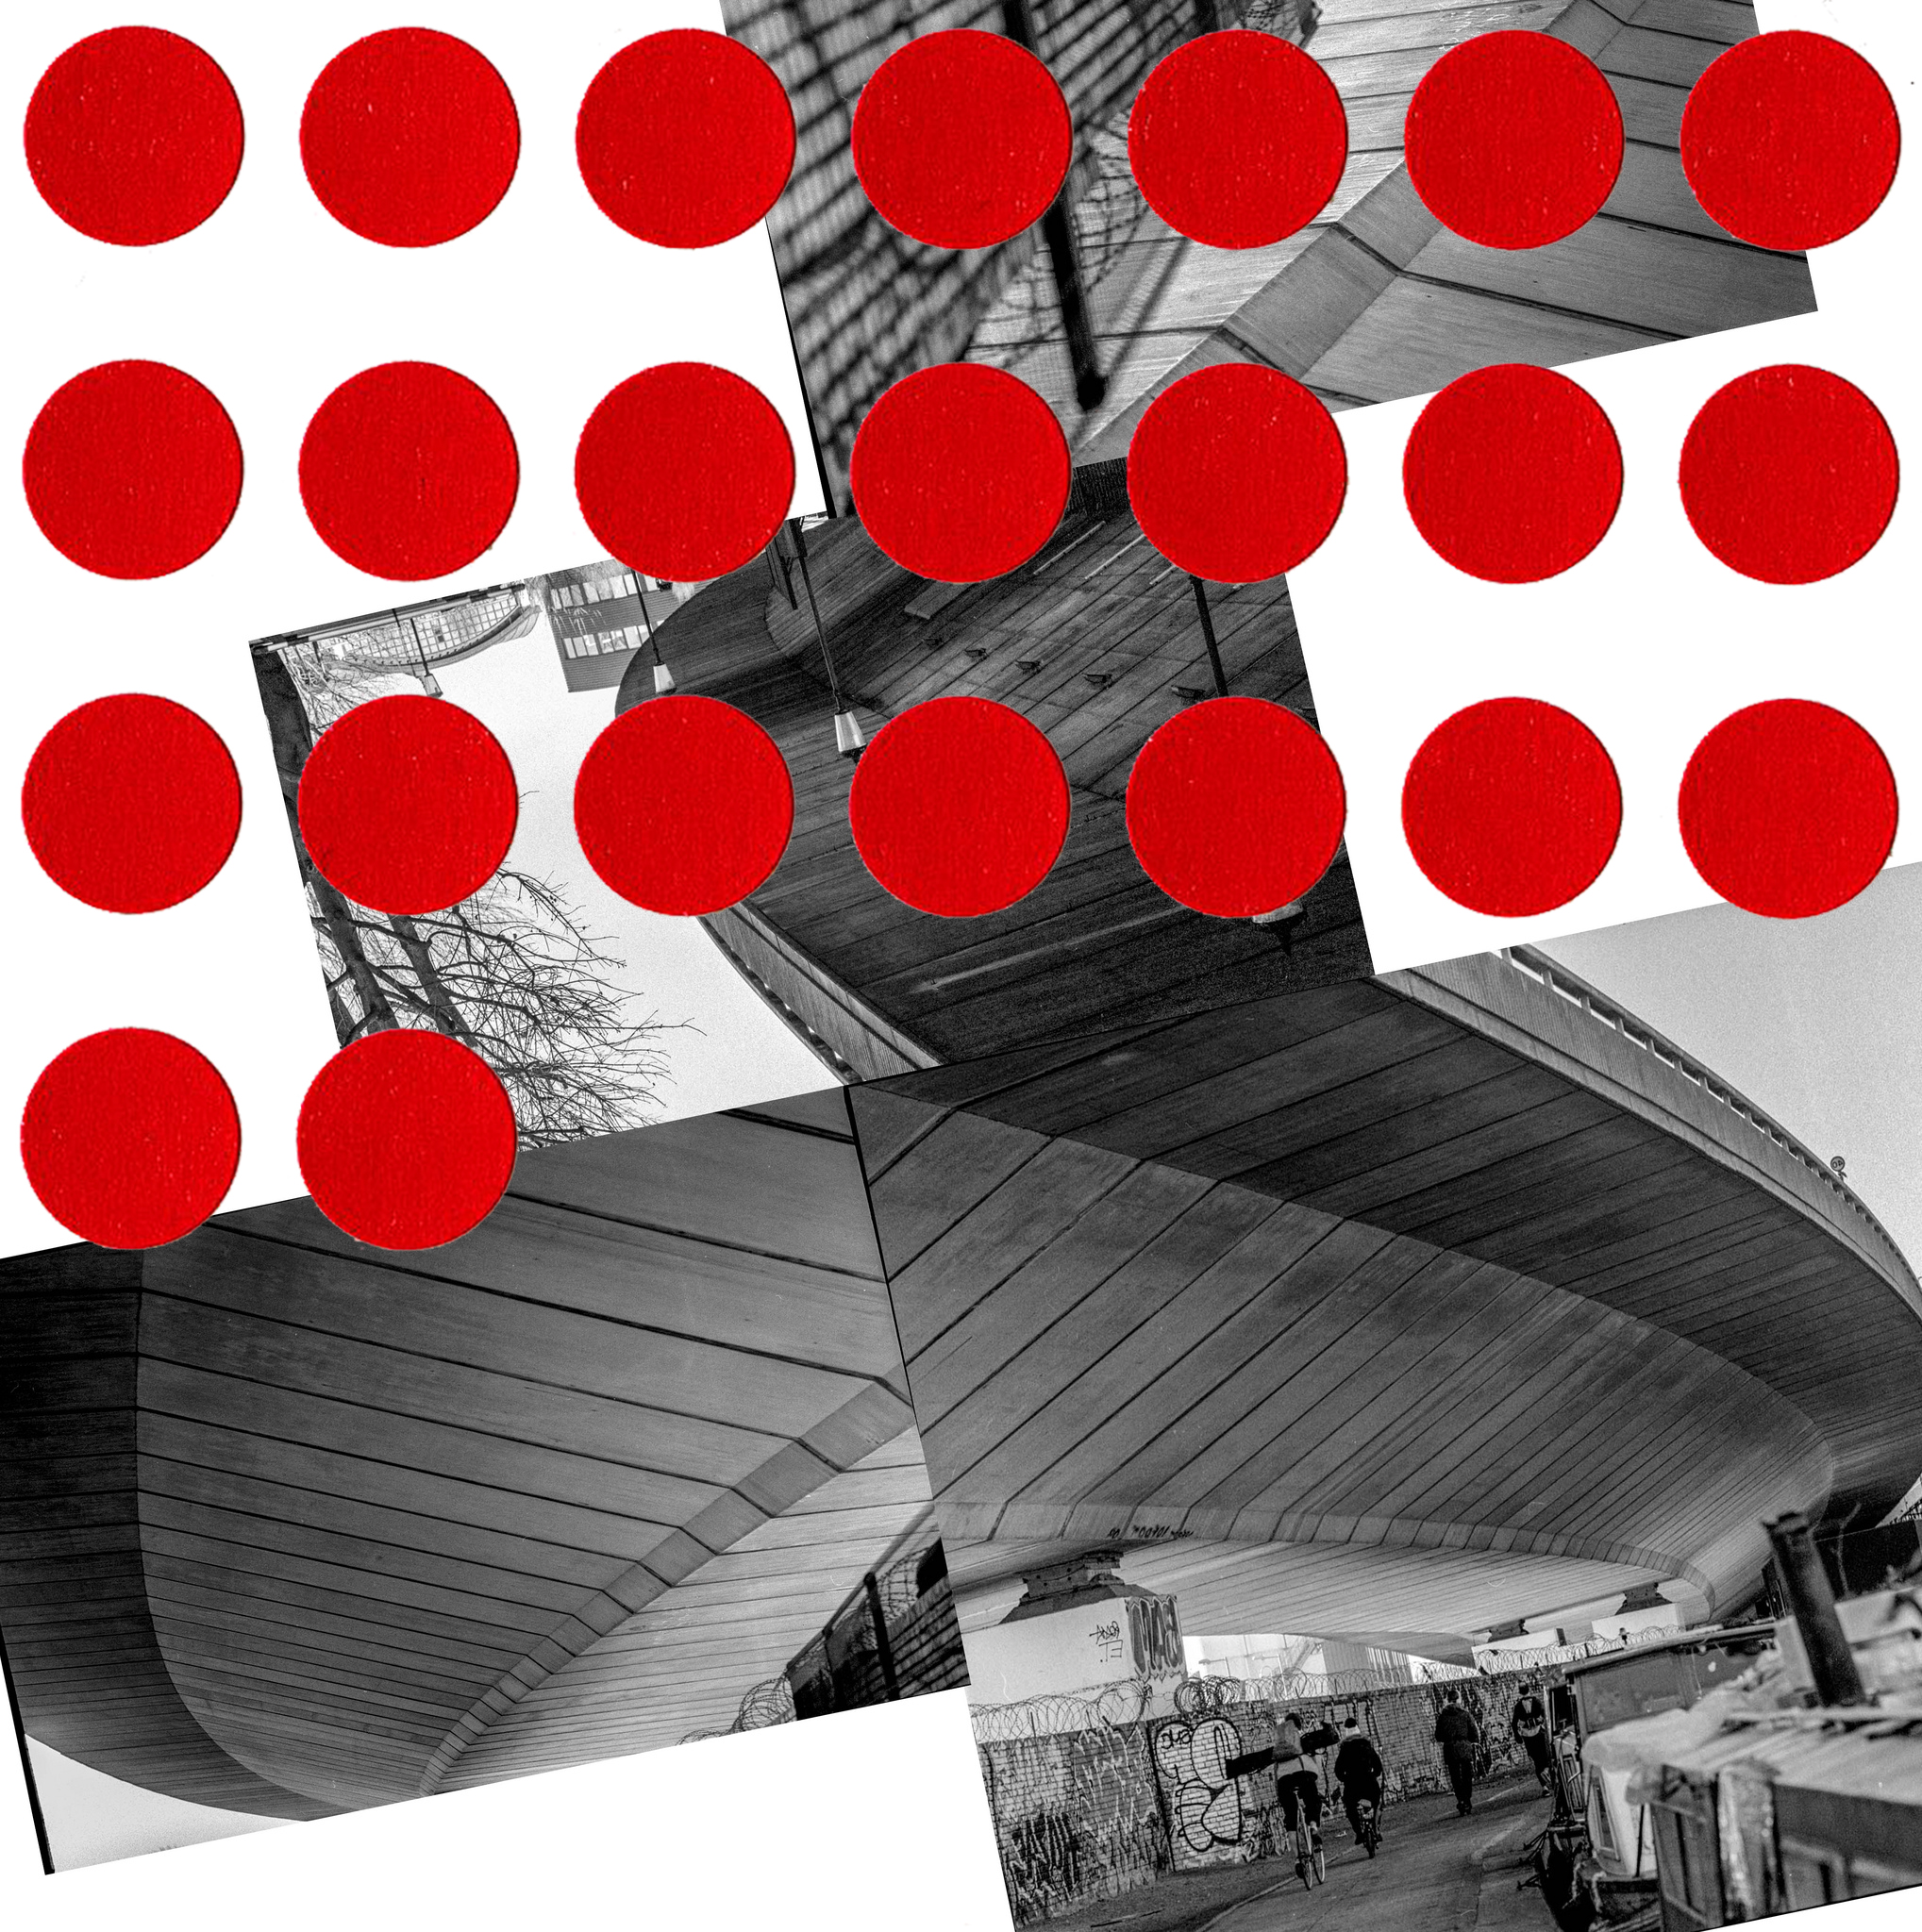 Collage black and white photographs of the Westway. Overlaid with Red dot stickers